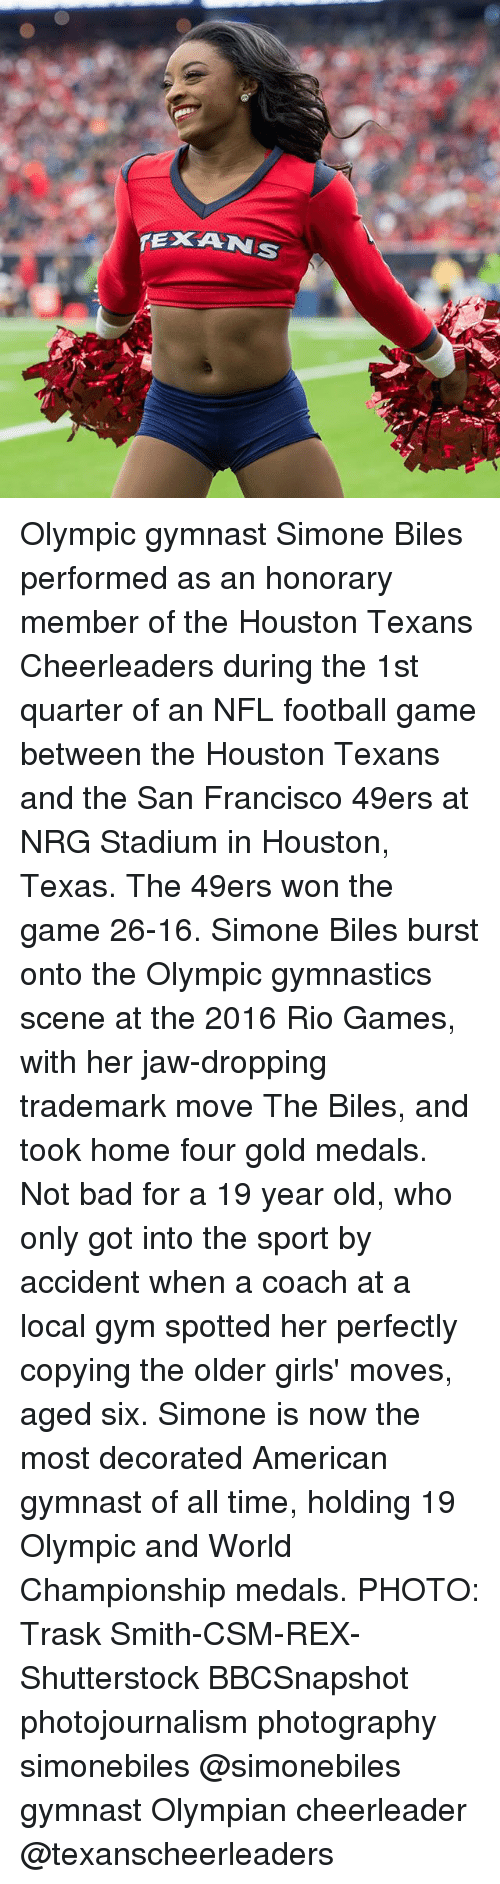 San Francisco 49ers, Bad, and Football: Olympic gymnast Simone Biles performed as an honorary member of the Houston Texans Cheerleaders during the 1st quarter of an NFL football game between the Houston Texans and the San Francisco 49ers at NRG Stadium in Houston, Texas. The 49ers won the game 26-16. Simone Biles burst onto the Olympic gymnastics scene at the 2016 Rio Games, with her jaw-dropping trademark move The Biles, and took home four gold medals. Not bad for a 19 year old, who only got into the sport by accident when a coach at a local gym spotted her perfectly copying the older girls' moves, aged six. Simone is now the most decorated American gymnast of all time, holding 19 Olympic and World Championship medals. PHOTO: Trask Smith-CSM-REX-Shutterstock BBCSnapshot photojournalism photography simonebiles @simonebiles gymnast Olympian cheerleader @texanscheerleaders